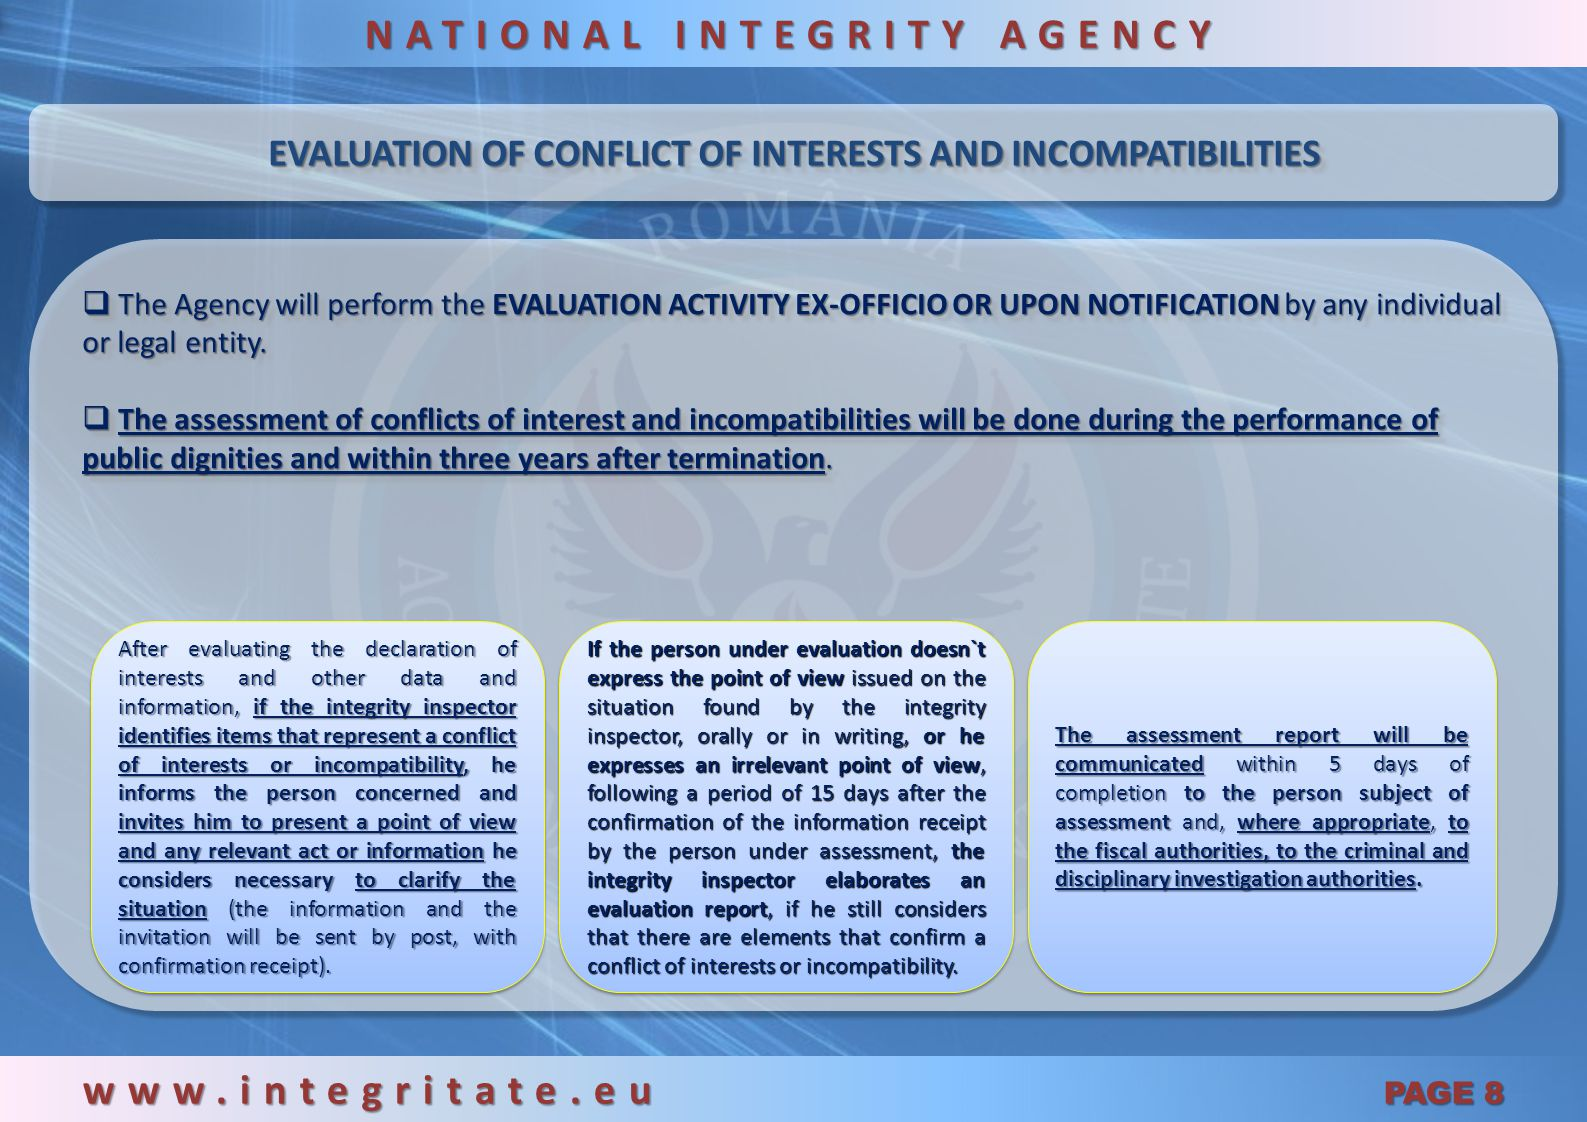 CONFLICT OF INTERESTS AND INCOMPATIBILITIES www.integritate.eu PAGE 7 NATIONAL INTEGRITY AGENCY CONFLICT OF INTERESTS represents the circumstances in which a person exercising a public dignity or a public position has a personal interest of patrimonial nature, which could influence the objectivity in fulfilling its tasks.